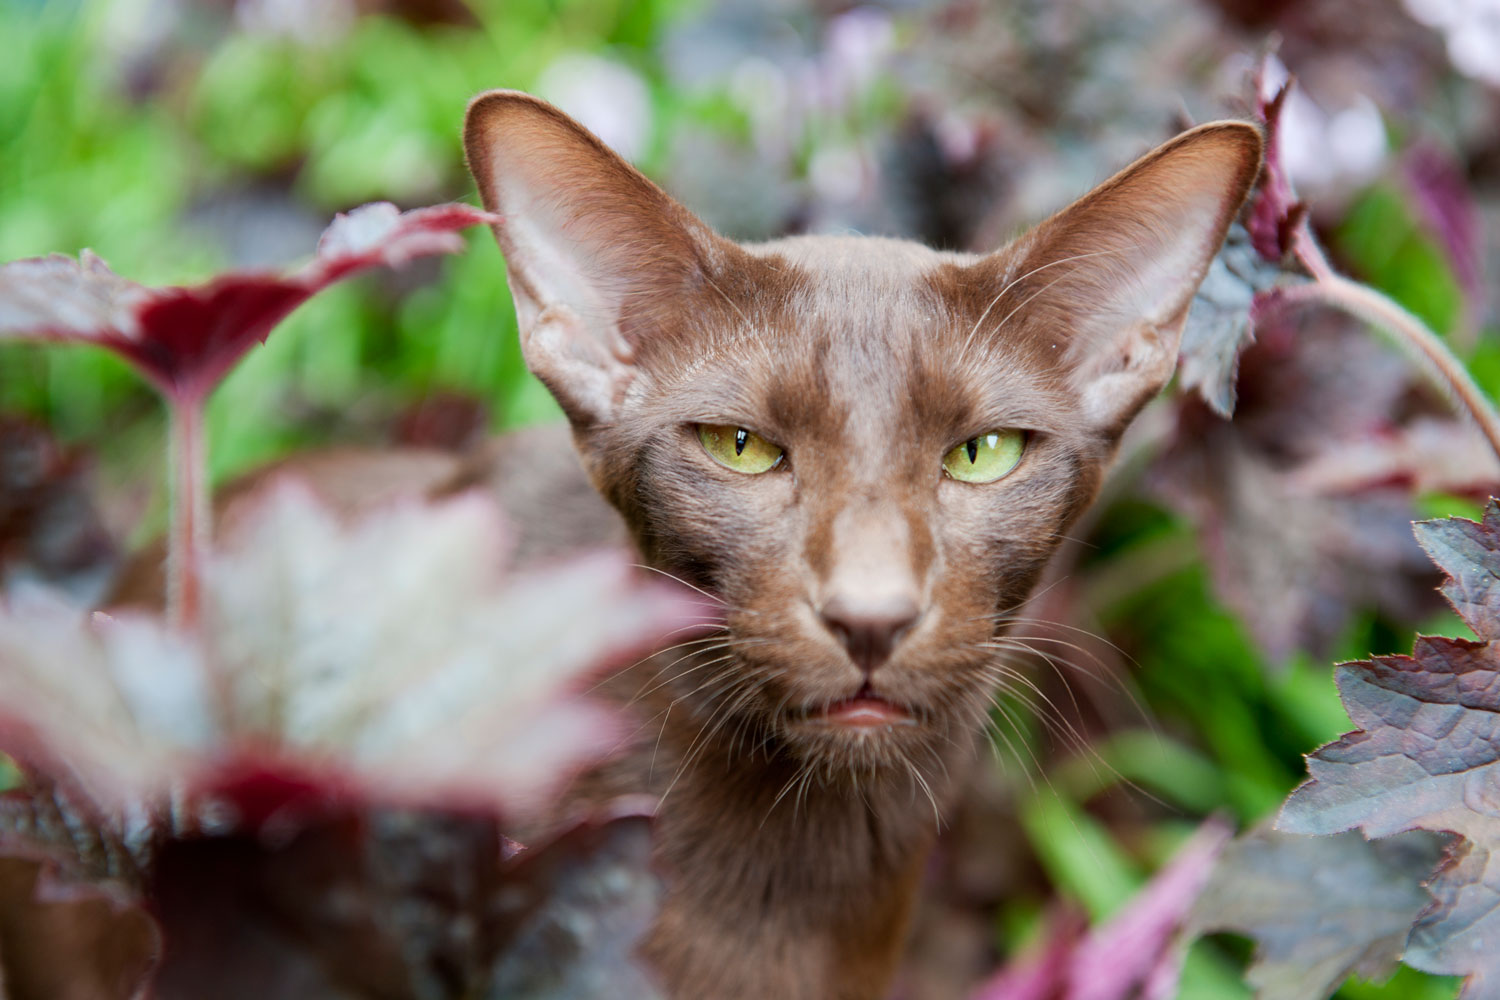 A brown Siamese cat staring at the camera while roaming in the garden